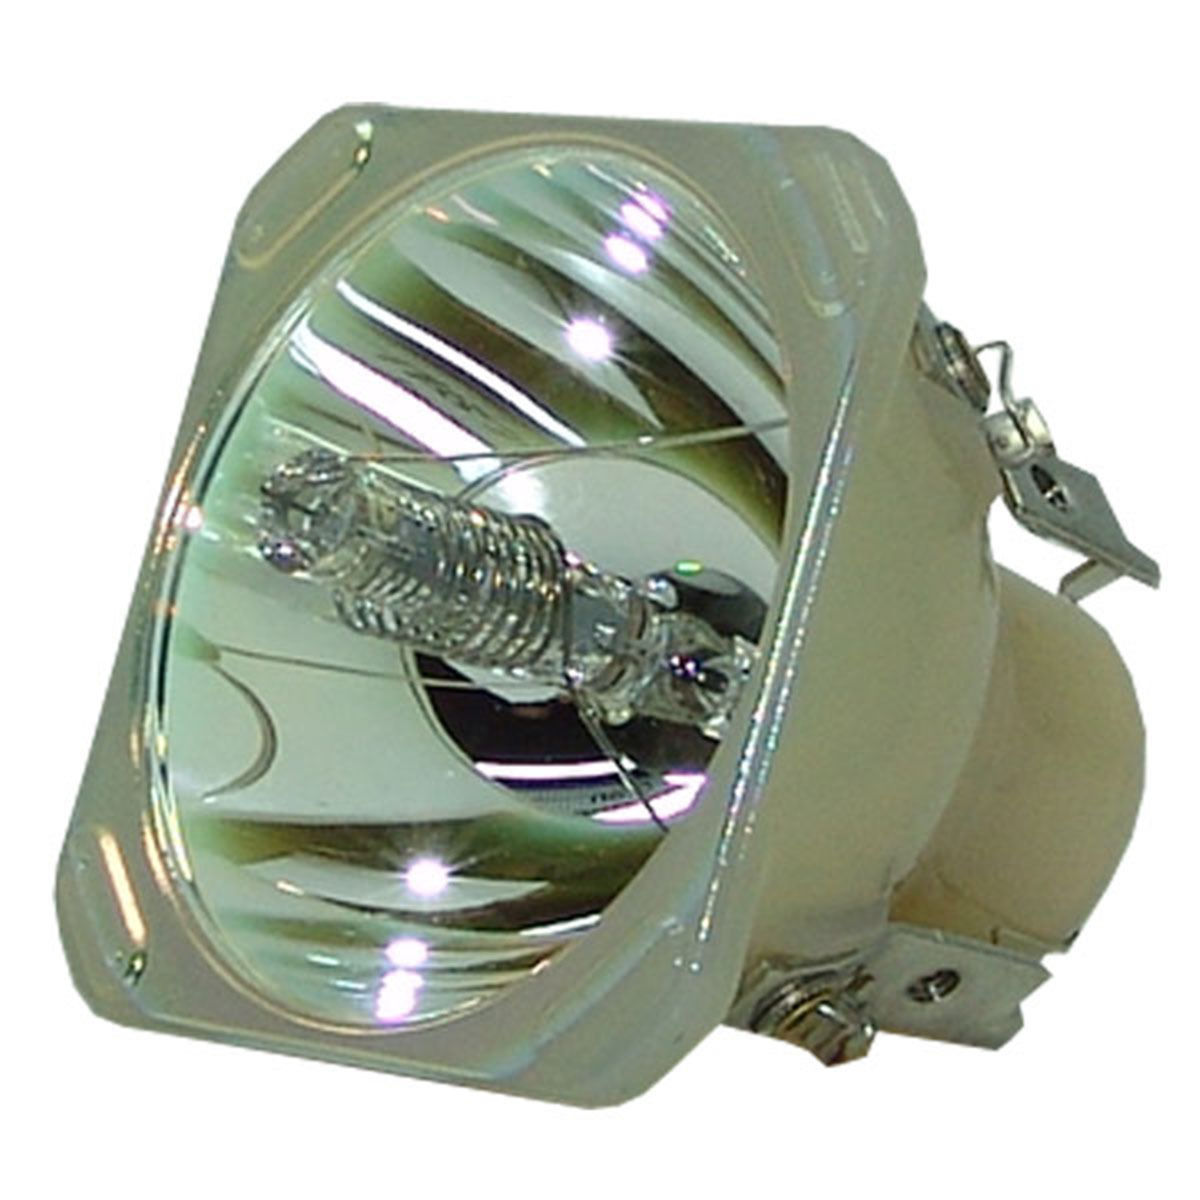 Compatible Bare Bulb 003-120181-01 for CHRISTIE DS +26 / DS +300 / DS +305 / DS +305W Projector Lamp Bulbs without housing projector bulbs 003 120188 01 for christie lx55 projector lamp bulbs with housing